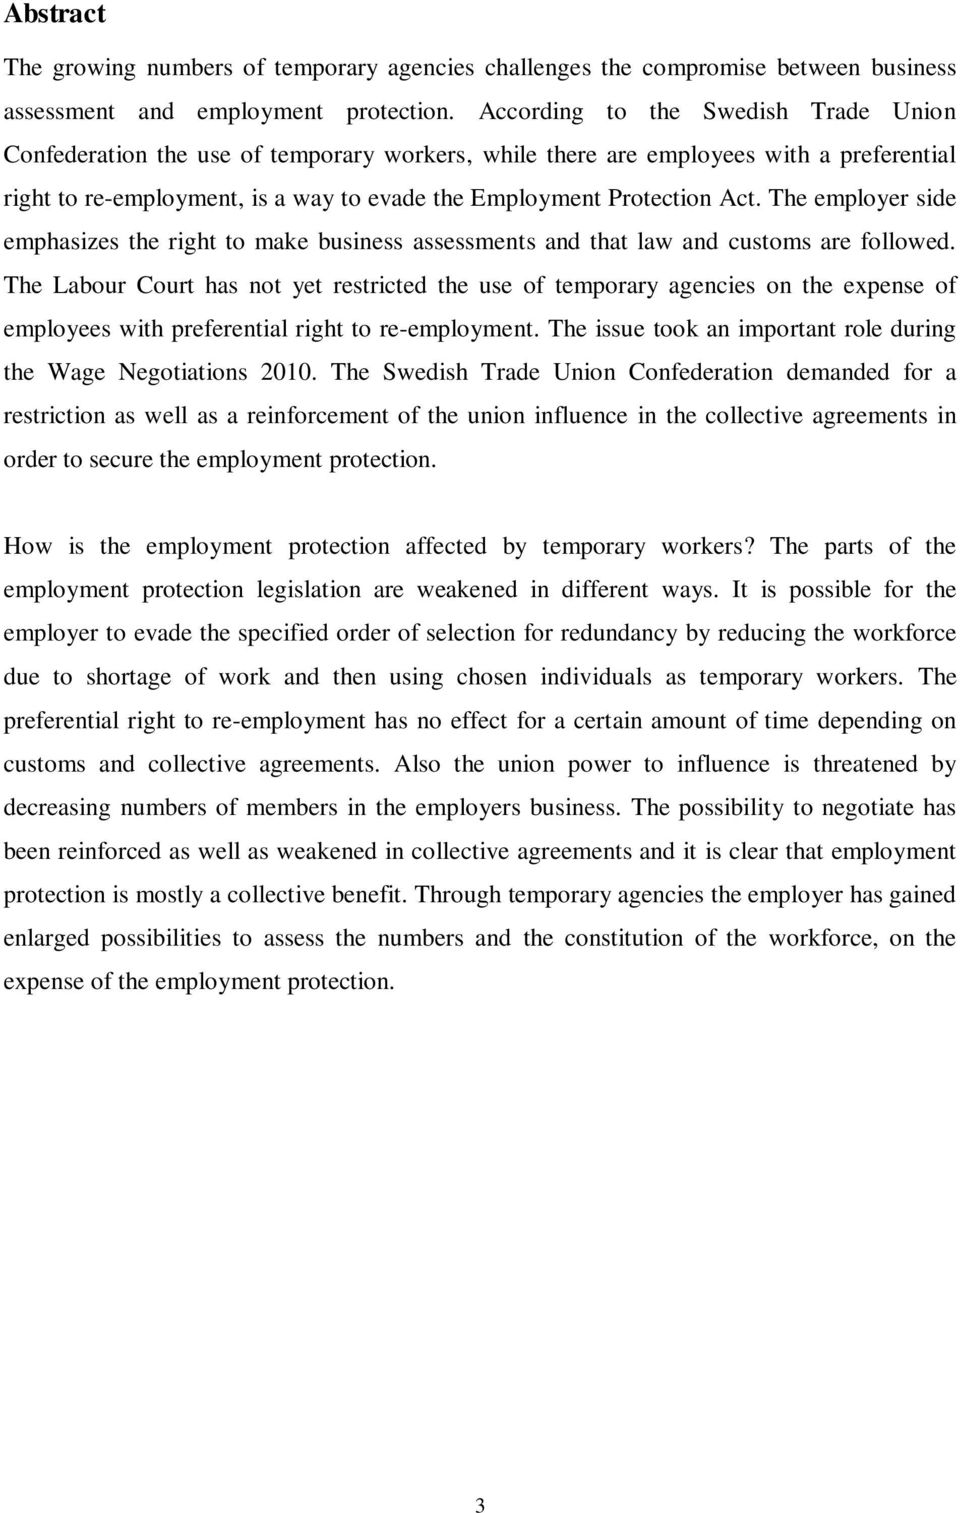 The employer side emphasizes the right to make business assessments and that law and customs are followed.